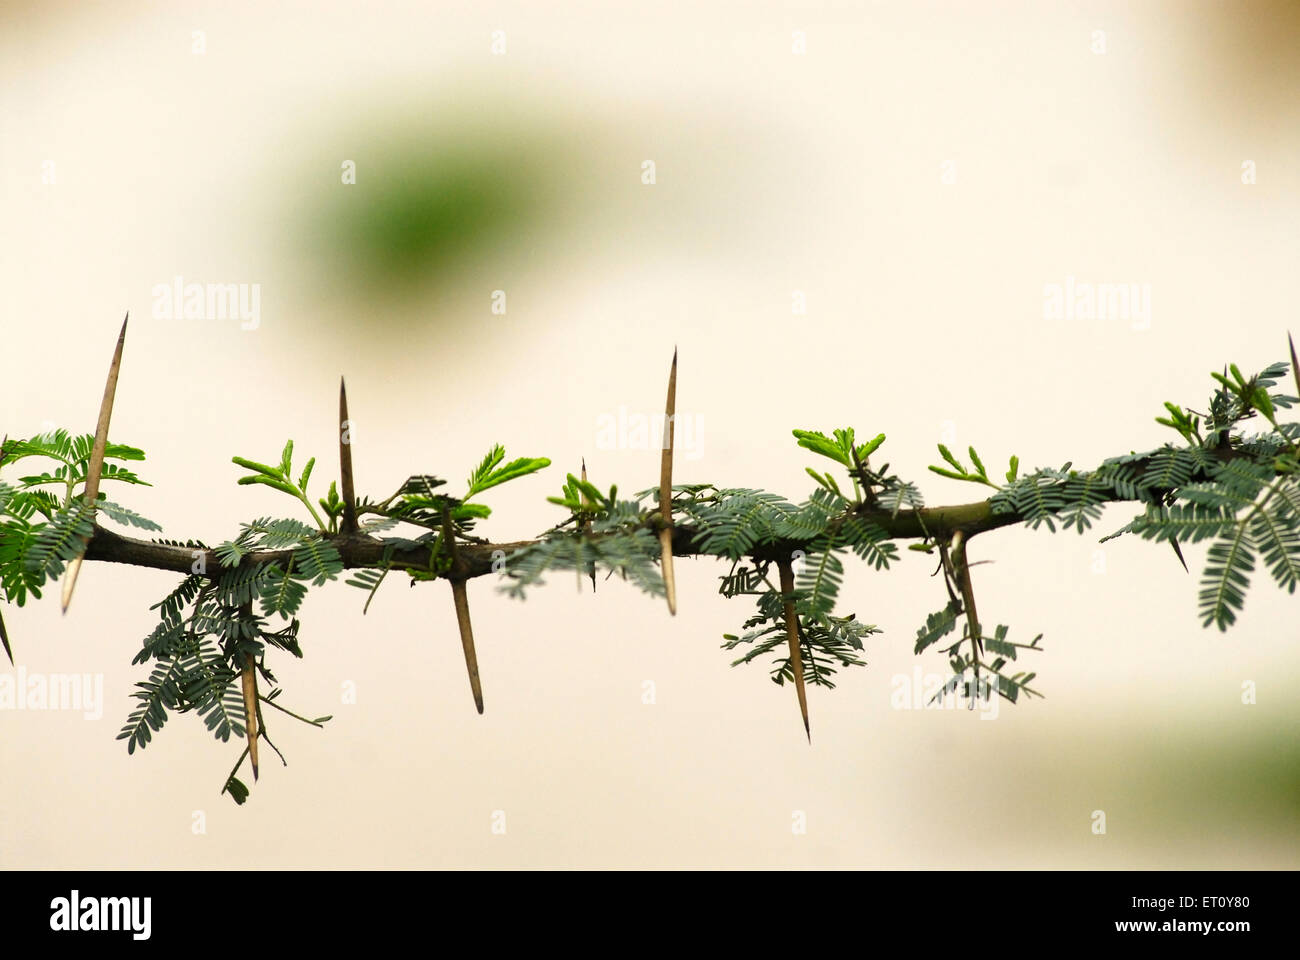 Thorn on stem of babhal or babul tree ; Madh ; Malshej Ghat ; Maharashtra ; India - Stock Image